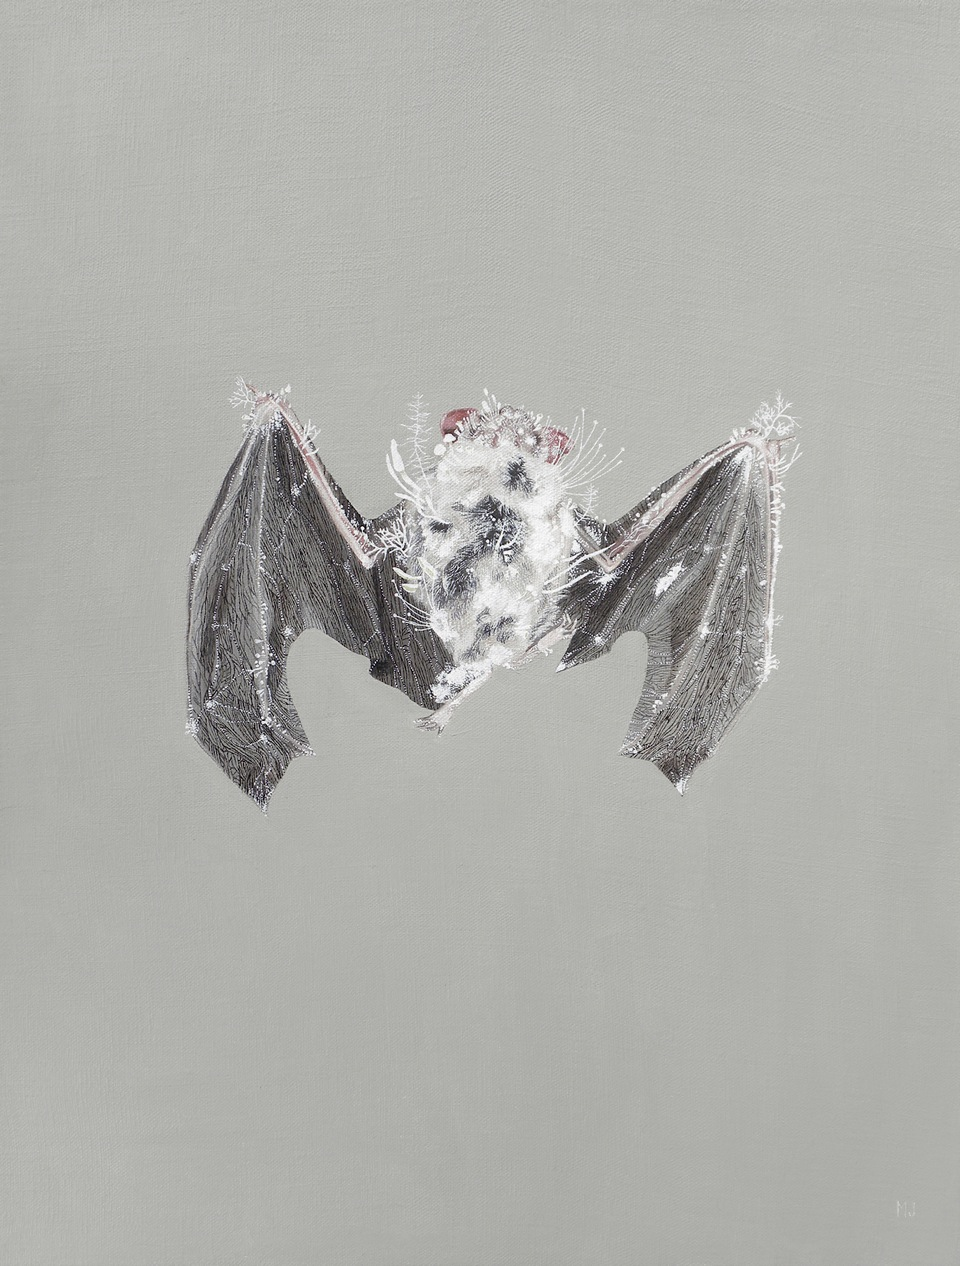 "@Melinda Josie, 'Silver-Haired Bat', 2010; Oil on Linen, 14"" x 18"" framed"